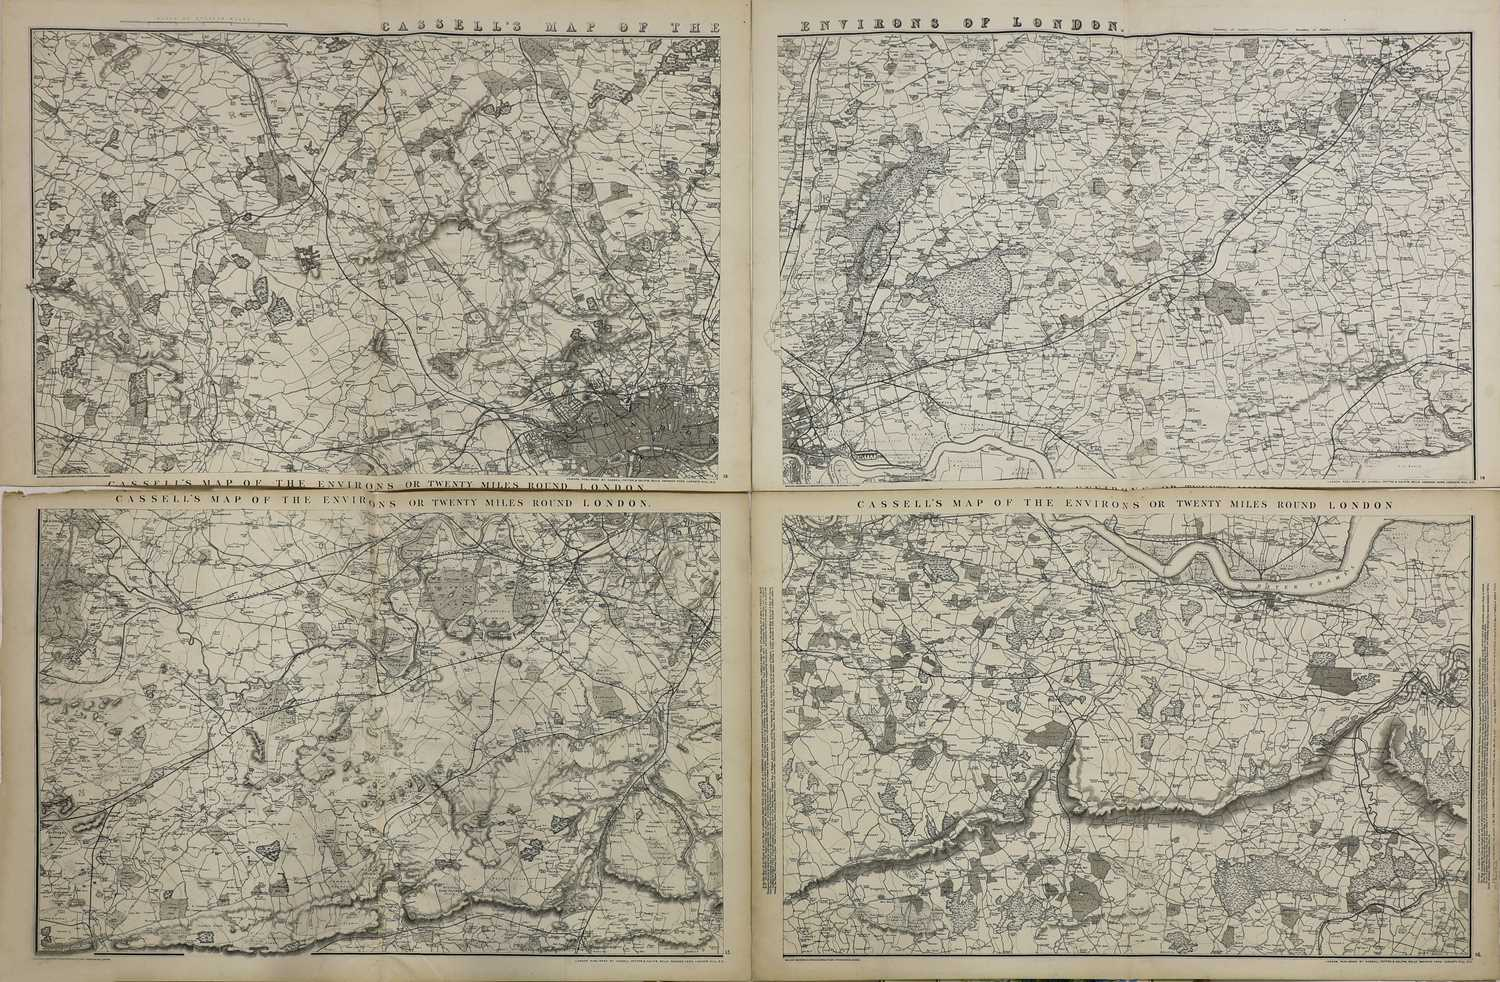 CASSELL'S MAP OF THE ENVIRONS OR TWENTY MILES ROUND LONDON,